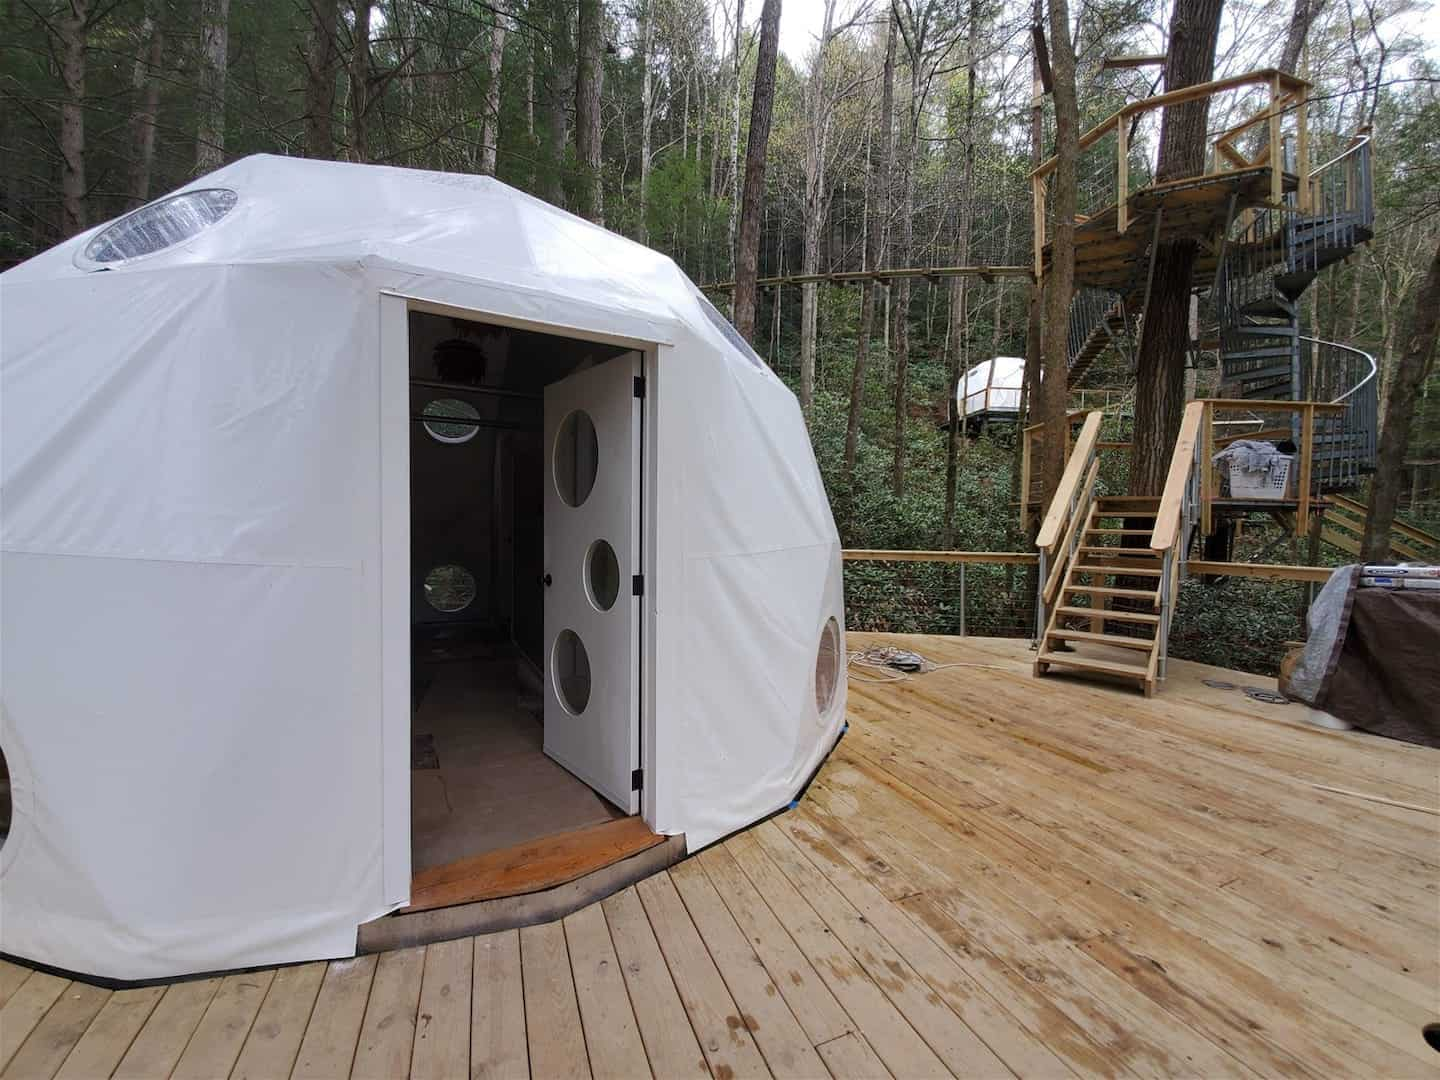 Image of treehouse rental in Kentucky